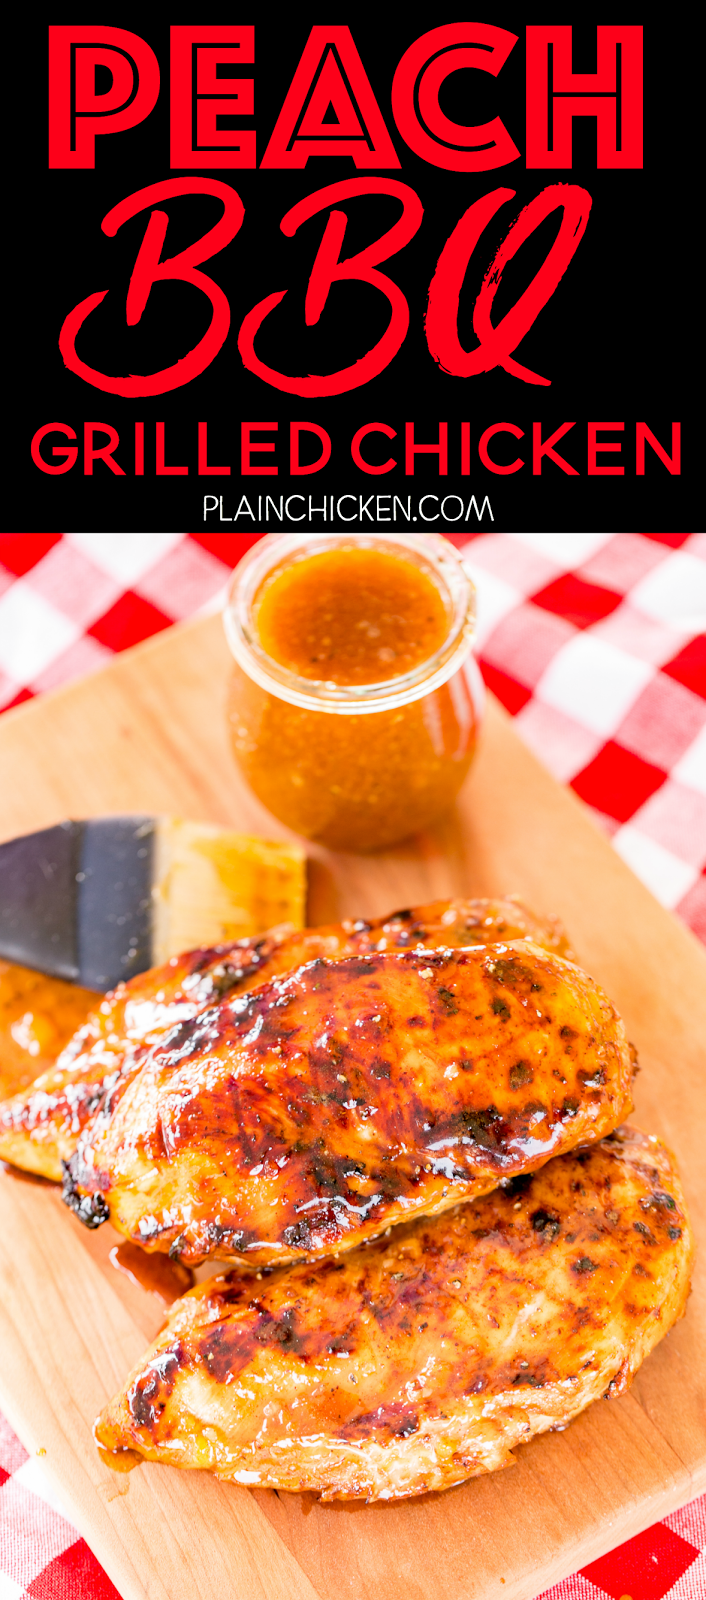 Peach BBQ Grilled Chicken - AMAZING!!! SO easy and SOOOO delicious!!! Season chicken with some store-bought BBQ seasoning and grill. Brush with an easy homemade peach BBQ sauce to finish. This is incredible!! Peach preserves, soy sauce, dry mustard, garlic, cayenne pepper, salt, and pepper. Can make the sauce ahead of time and refrigerate until ready to serve. We make this at least once a month. Everyone LOVES this easy chicken recipe.